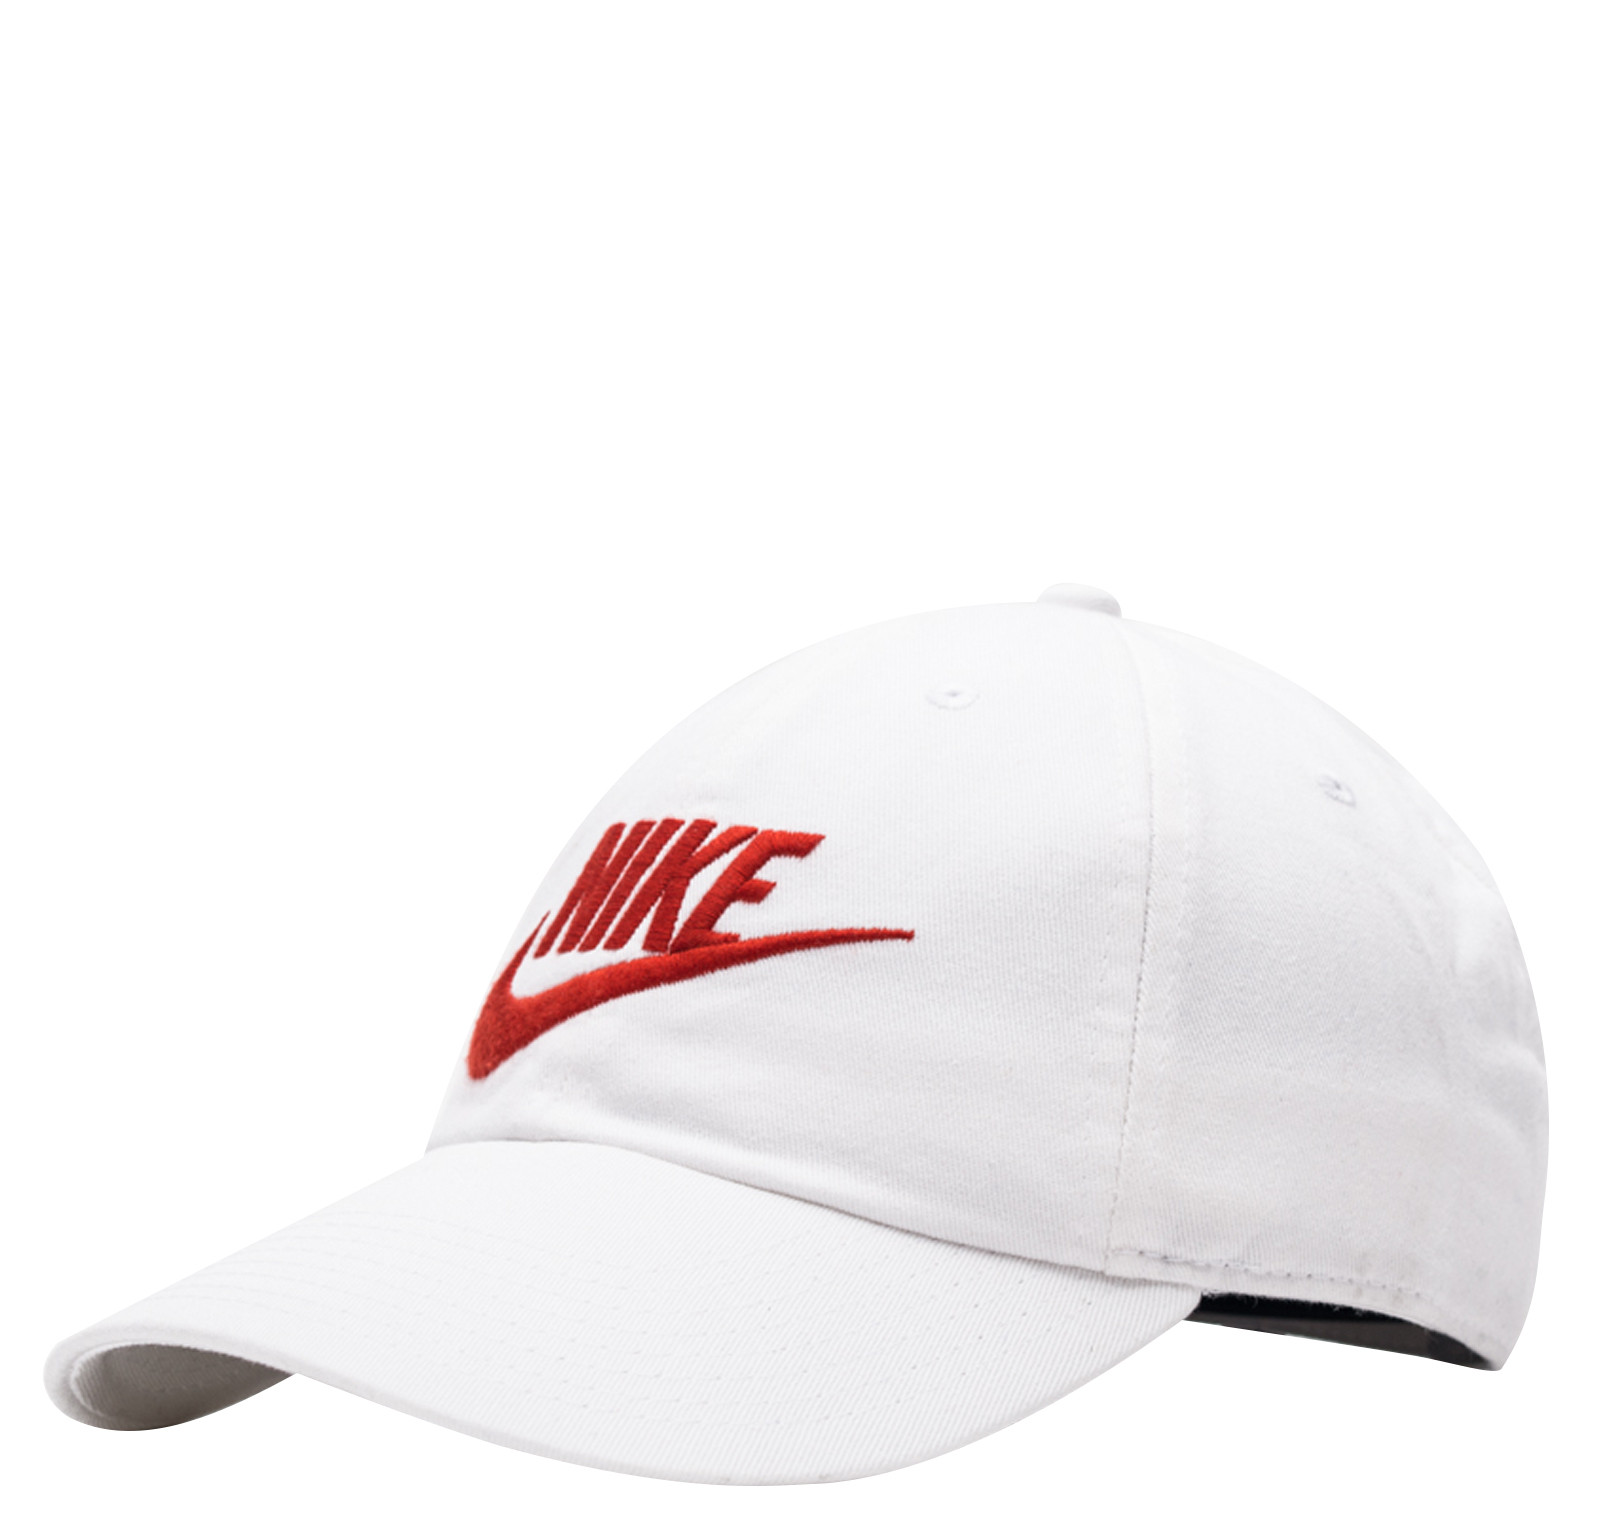 f7717ac5cad ... promo code for nike mens nike futura washed h86 adjustable hat white  university red 626305 100